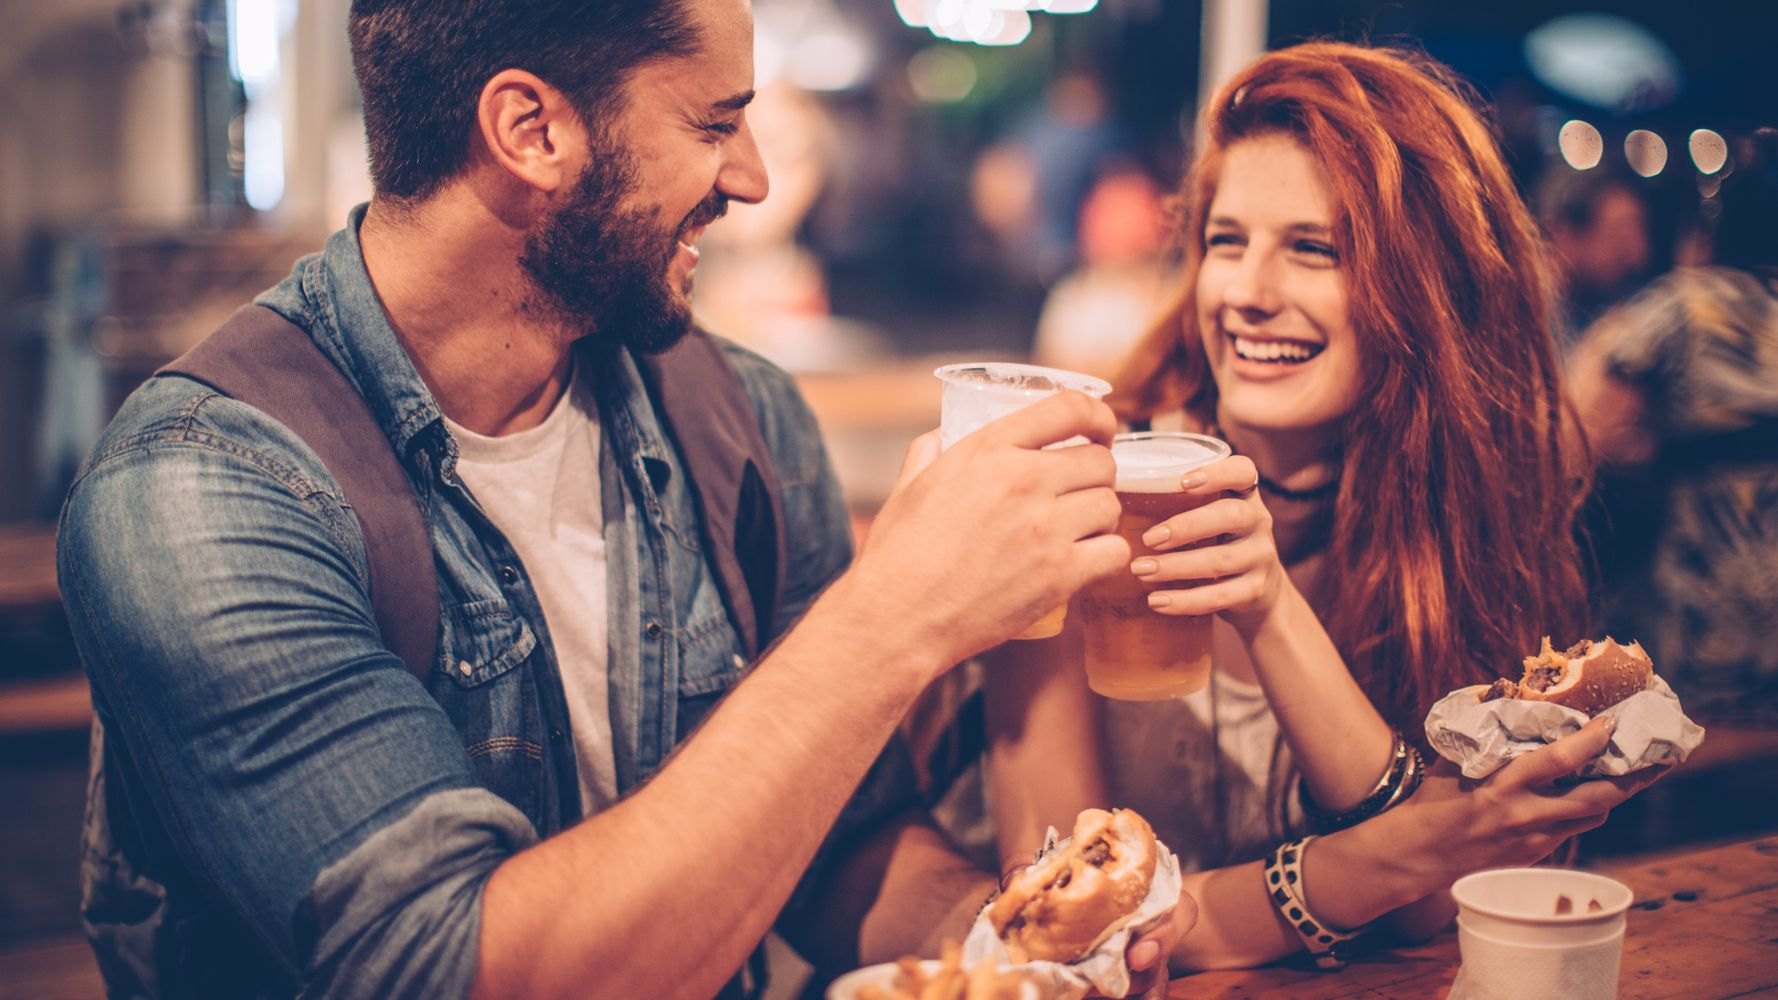 Who Should Pay On A First Date? | HuffPost Life